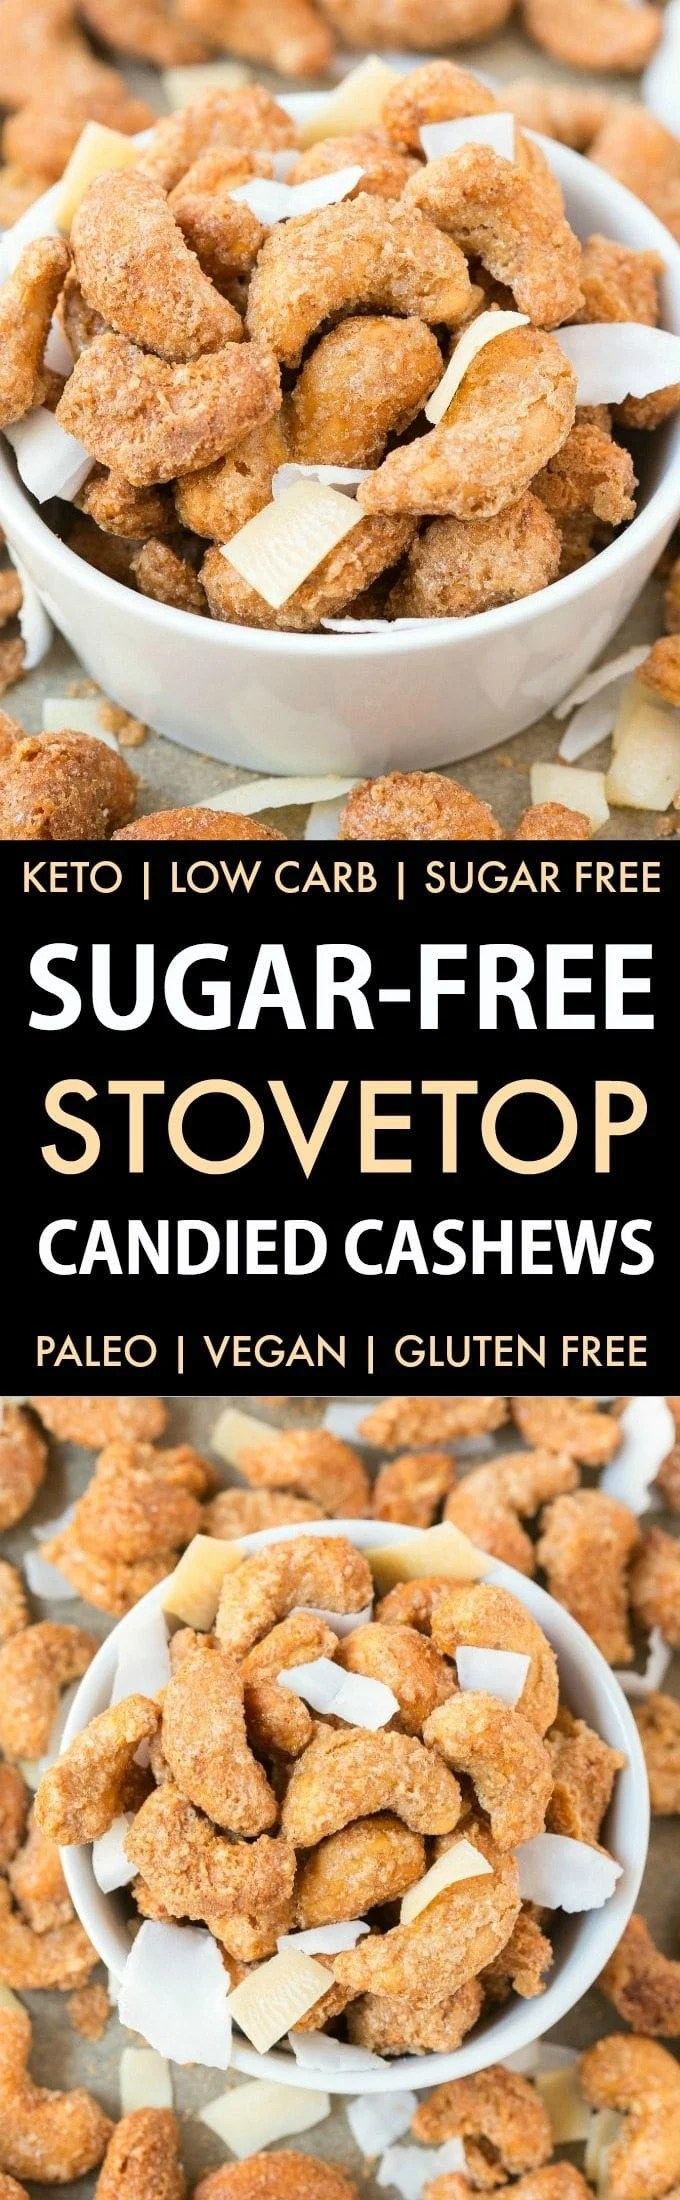 Easy Sugar-Free Candied Cashews (Keto, Low Carb, Paleo)- Stovetop made candied cashews made with zero sugar or oil- Perfect for holidays, gifts and every day guilt-free snacking! {vegan, gluten free, dairy free recipe}- #cashews #sugarfree #lowcarb #ketodessert | Recipe on thebigmansworld.com